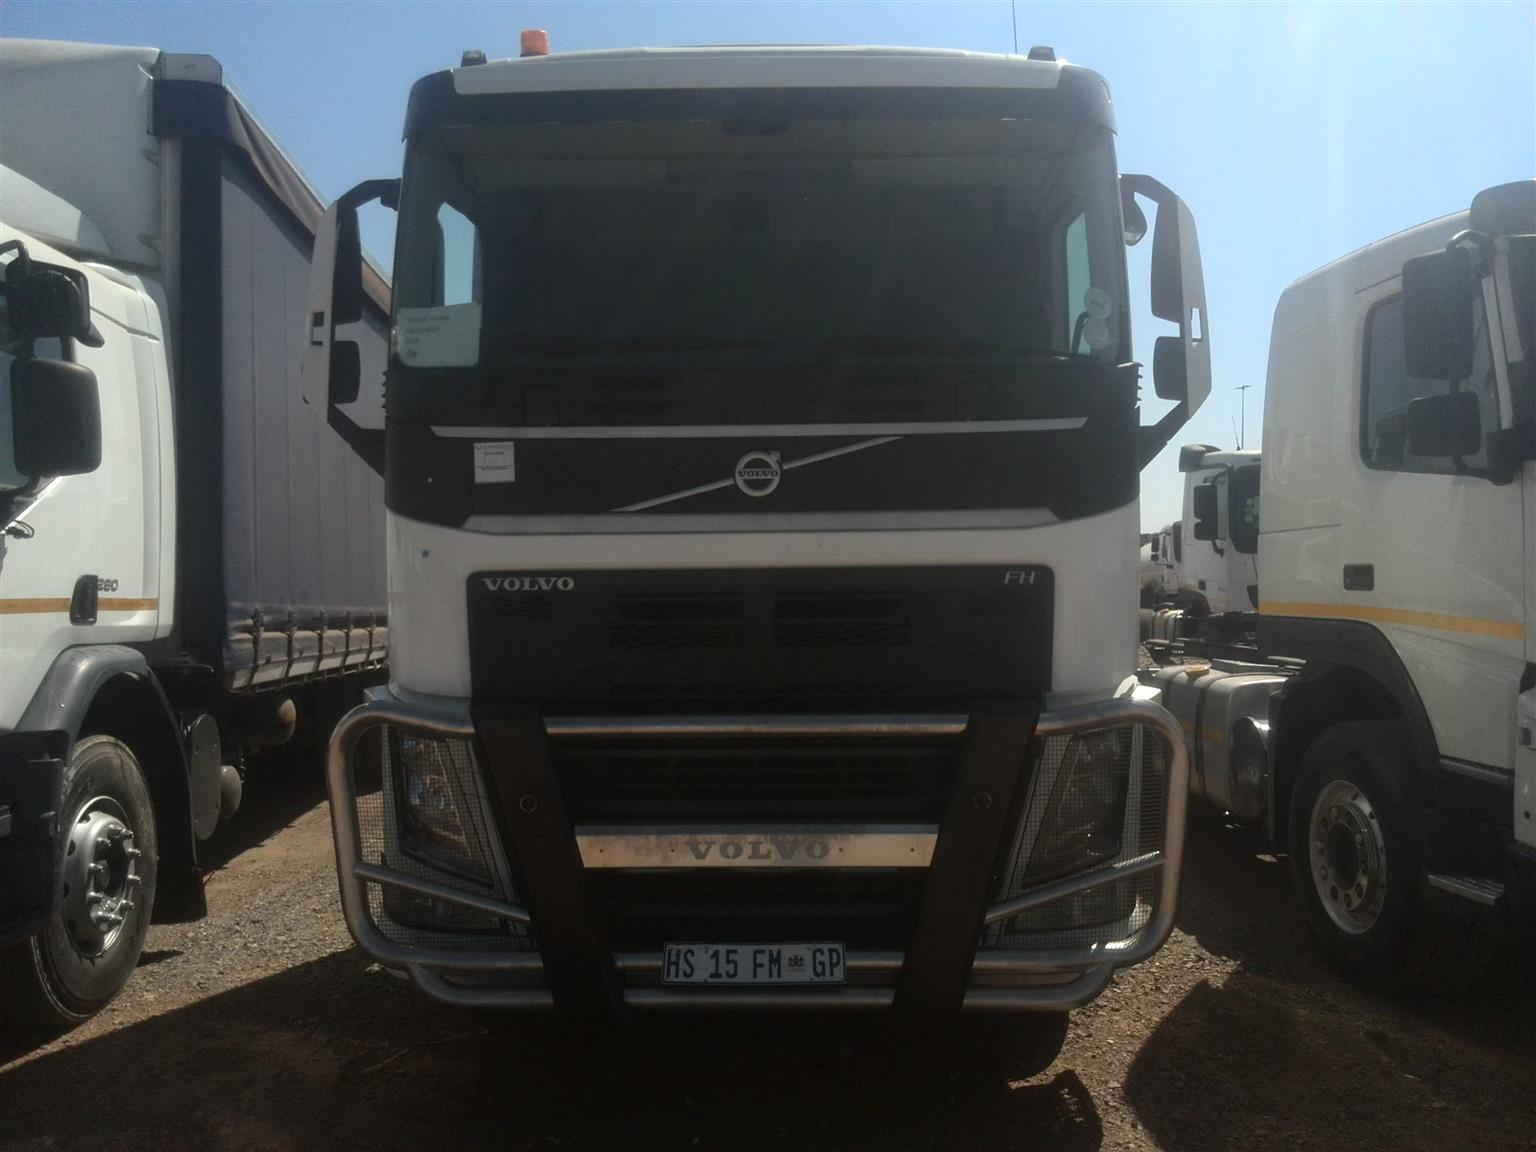 2015 - VOLVO Horse posted by Lemeshen Pillay UBUNTU TRUCK SALES